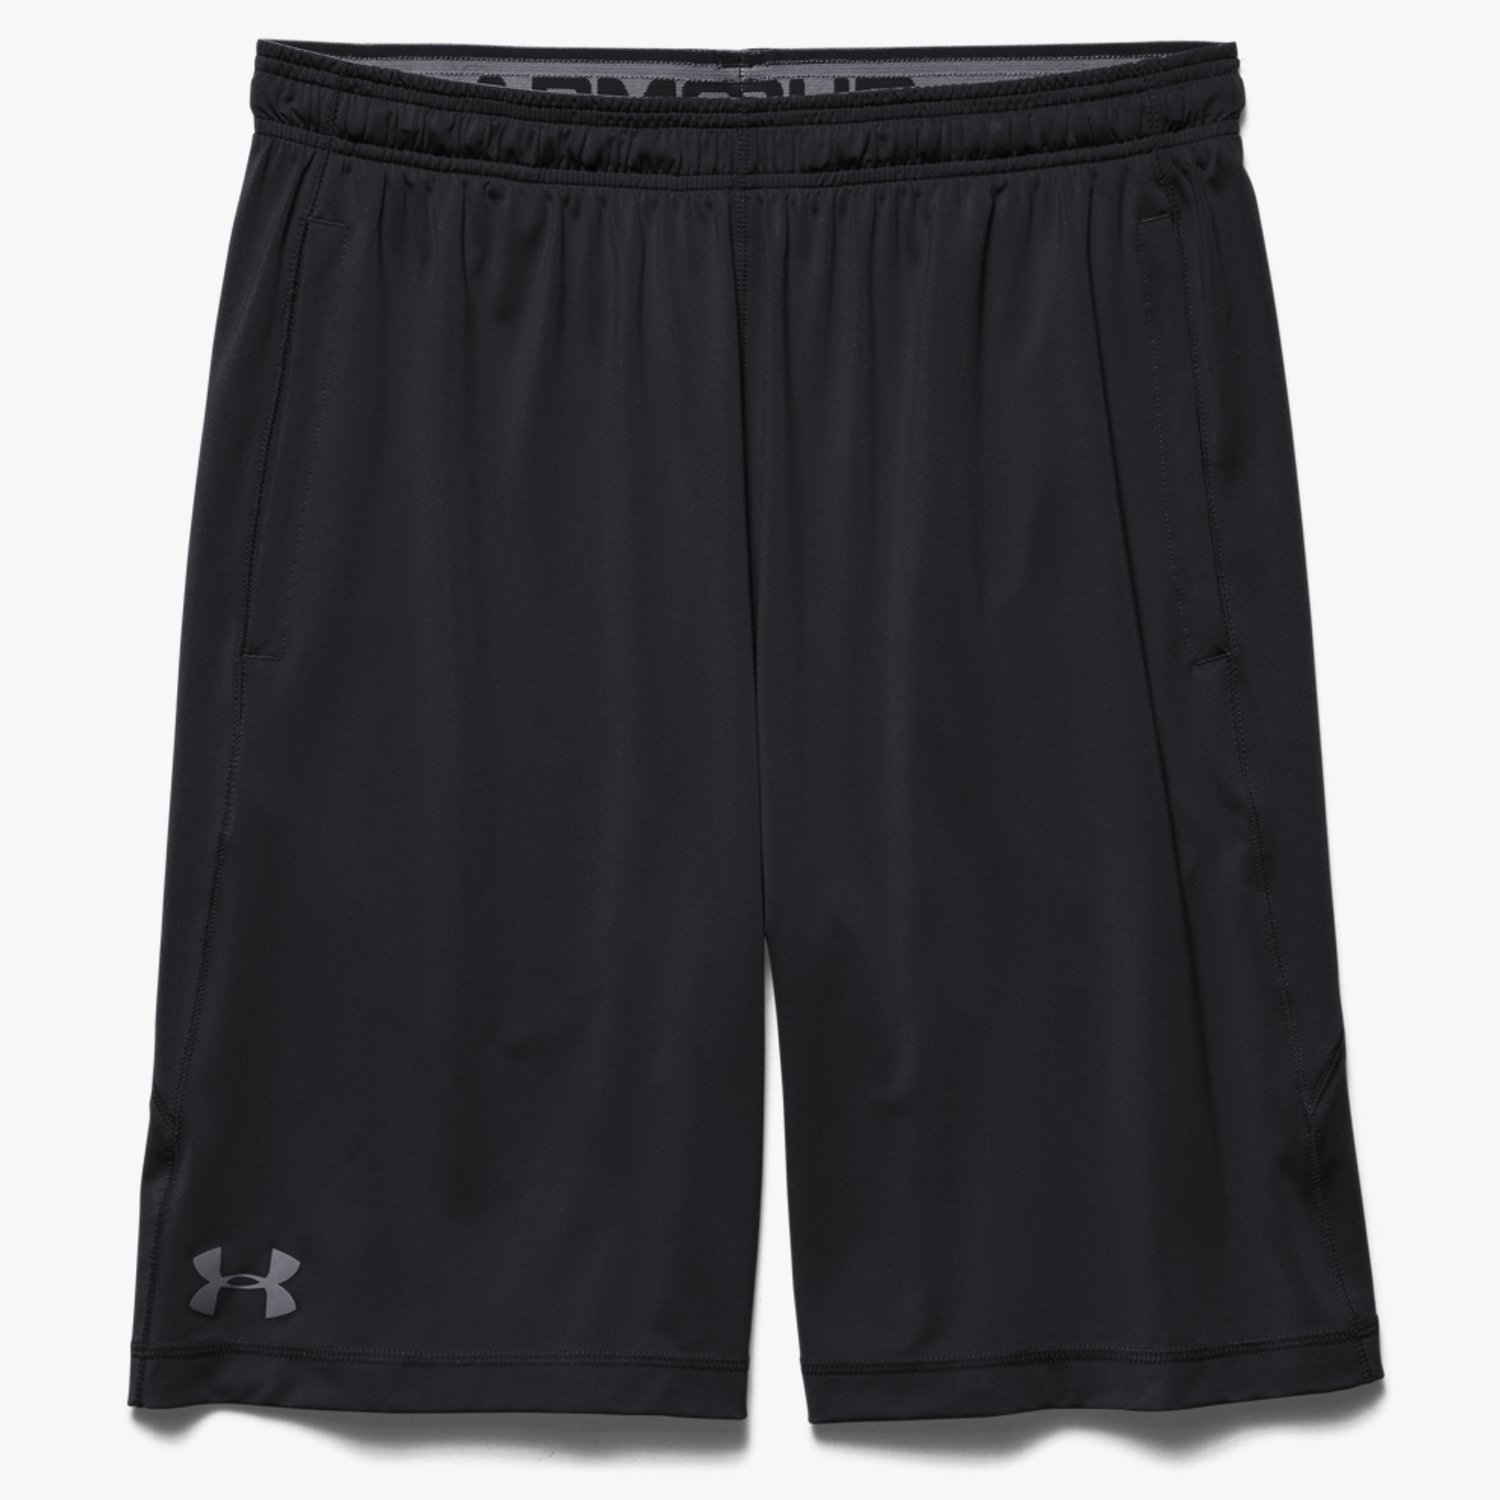 Under Armour UA Raid International Shorts Black/Graphite-30